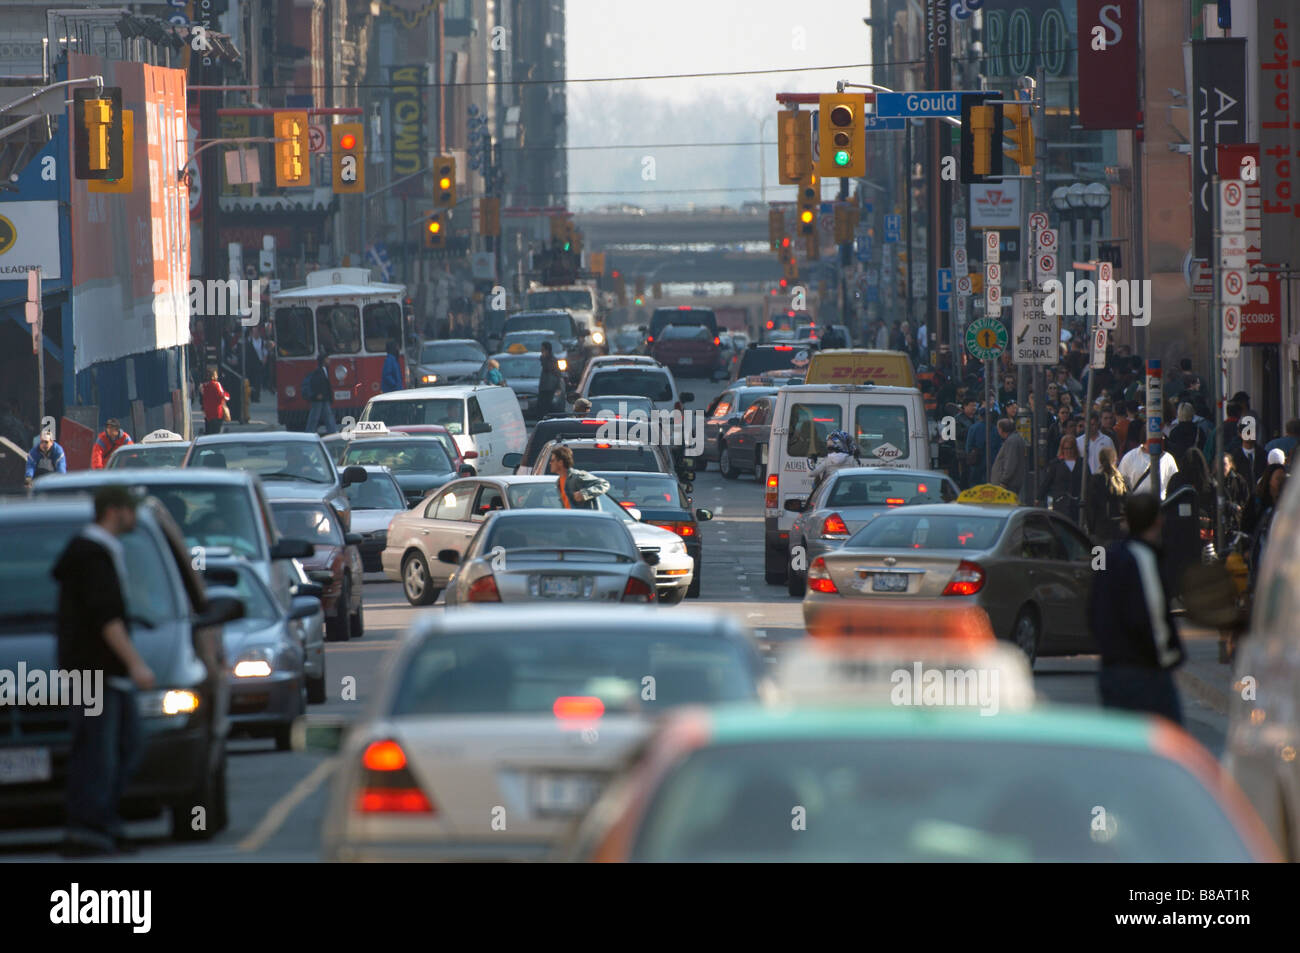 Busy Yonge St   Gould St  Intersection, Toronto,Ontario - Stock Image